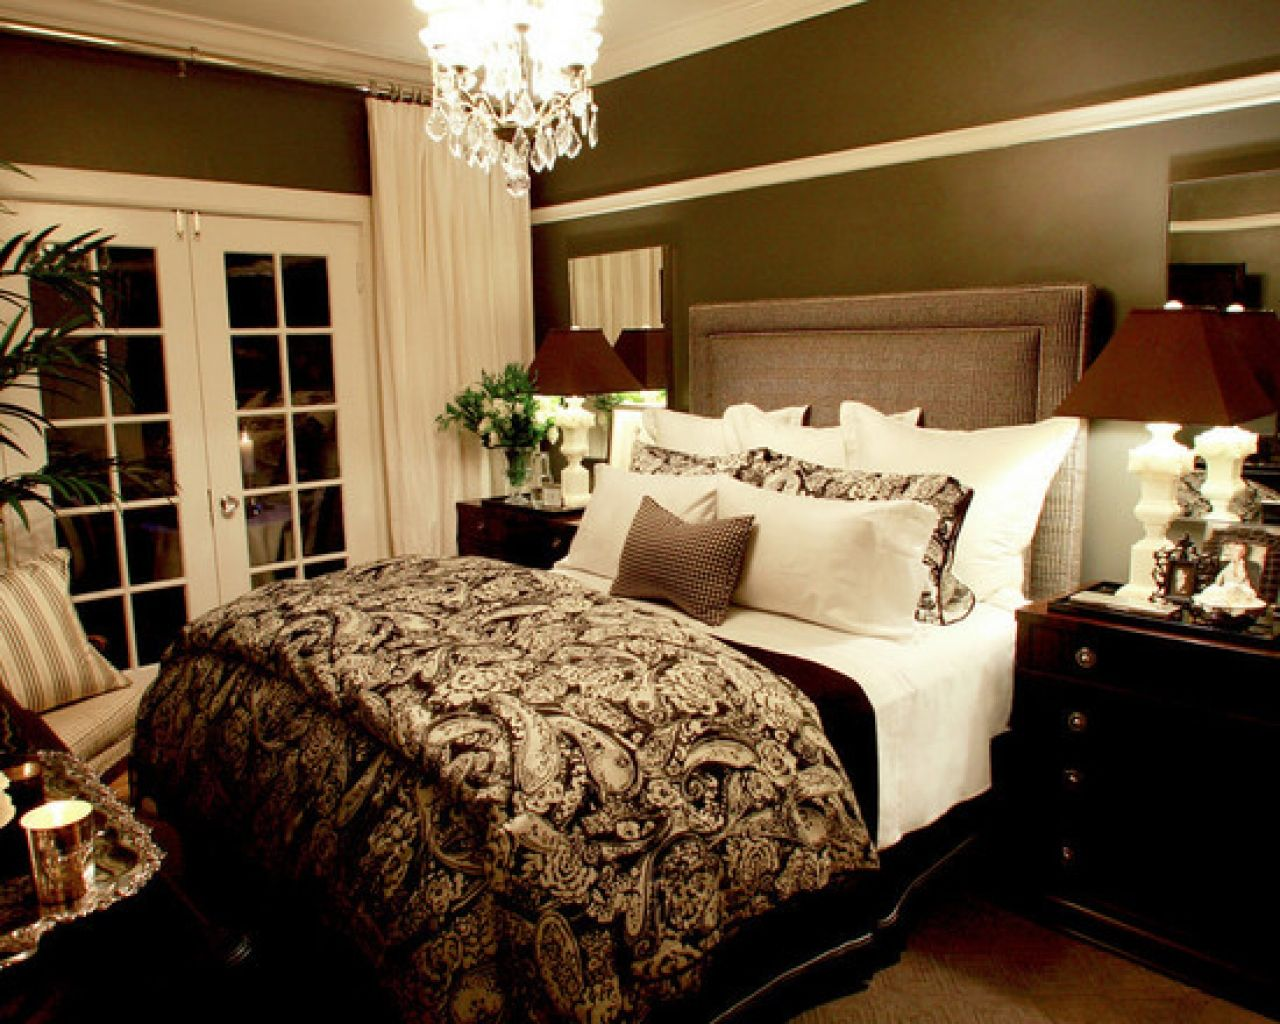 die besten 25 romantisches schlafzimmer dekor ideen auf pinterest romantische schlafzimmer. Black Bedroom Furniture Sets. Home Design Ideas